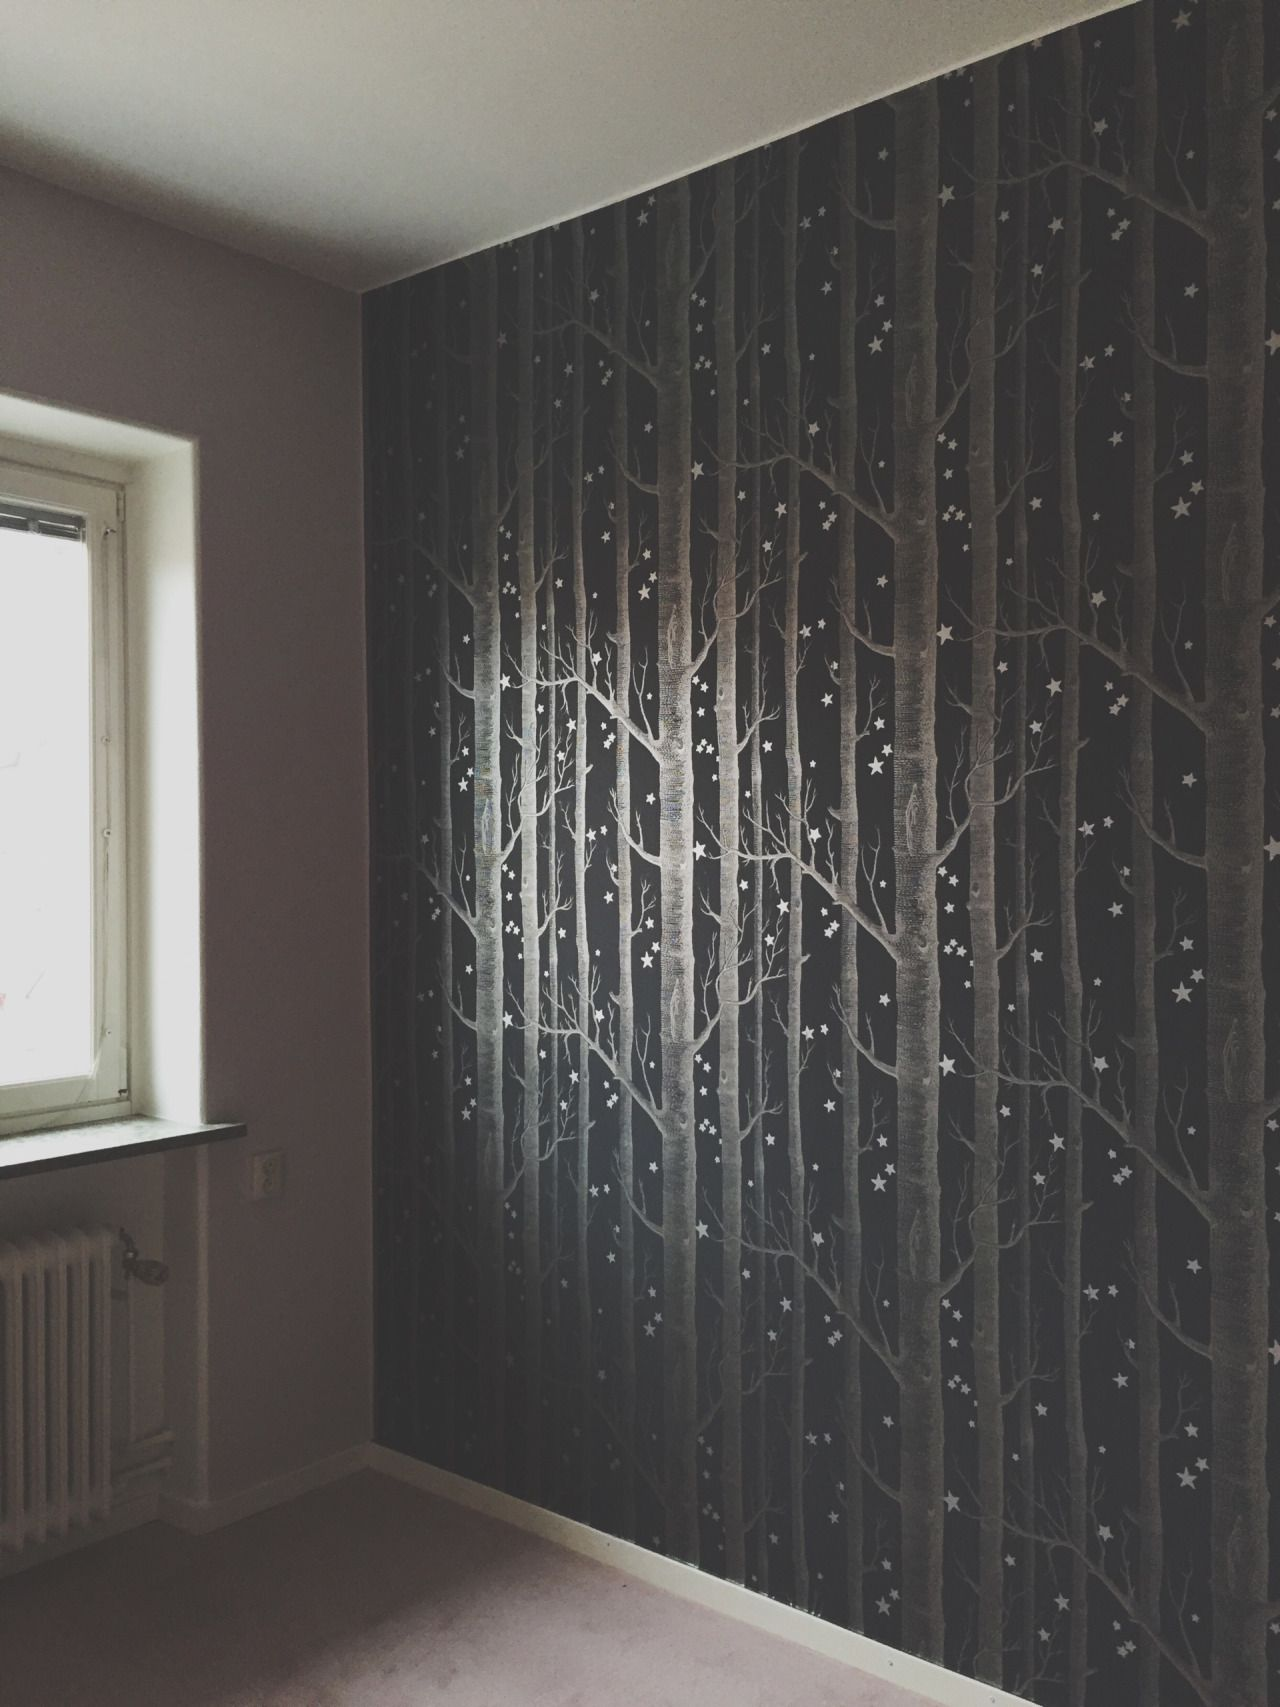 Wood & Star wallpaper Whimsical collection by Cole & Son